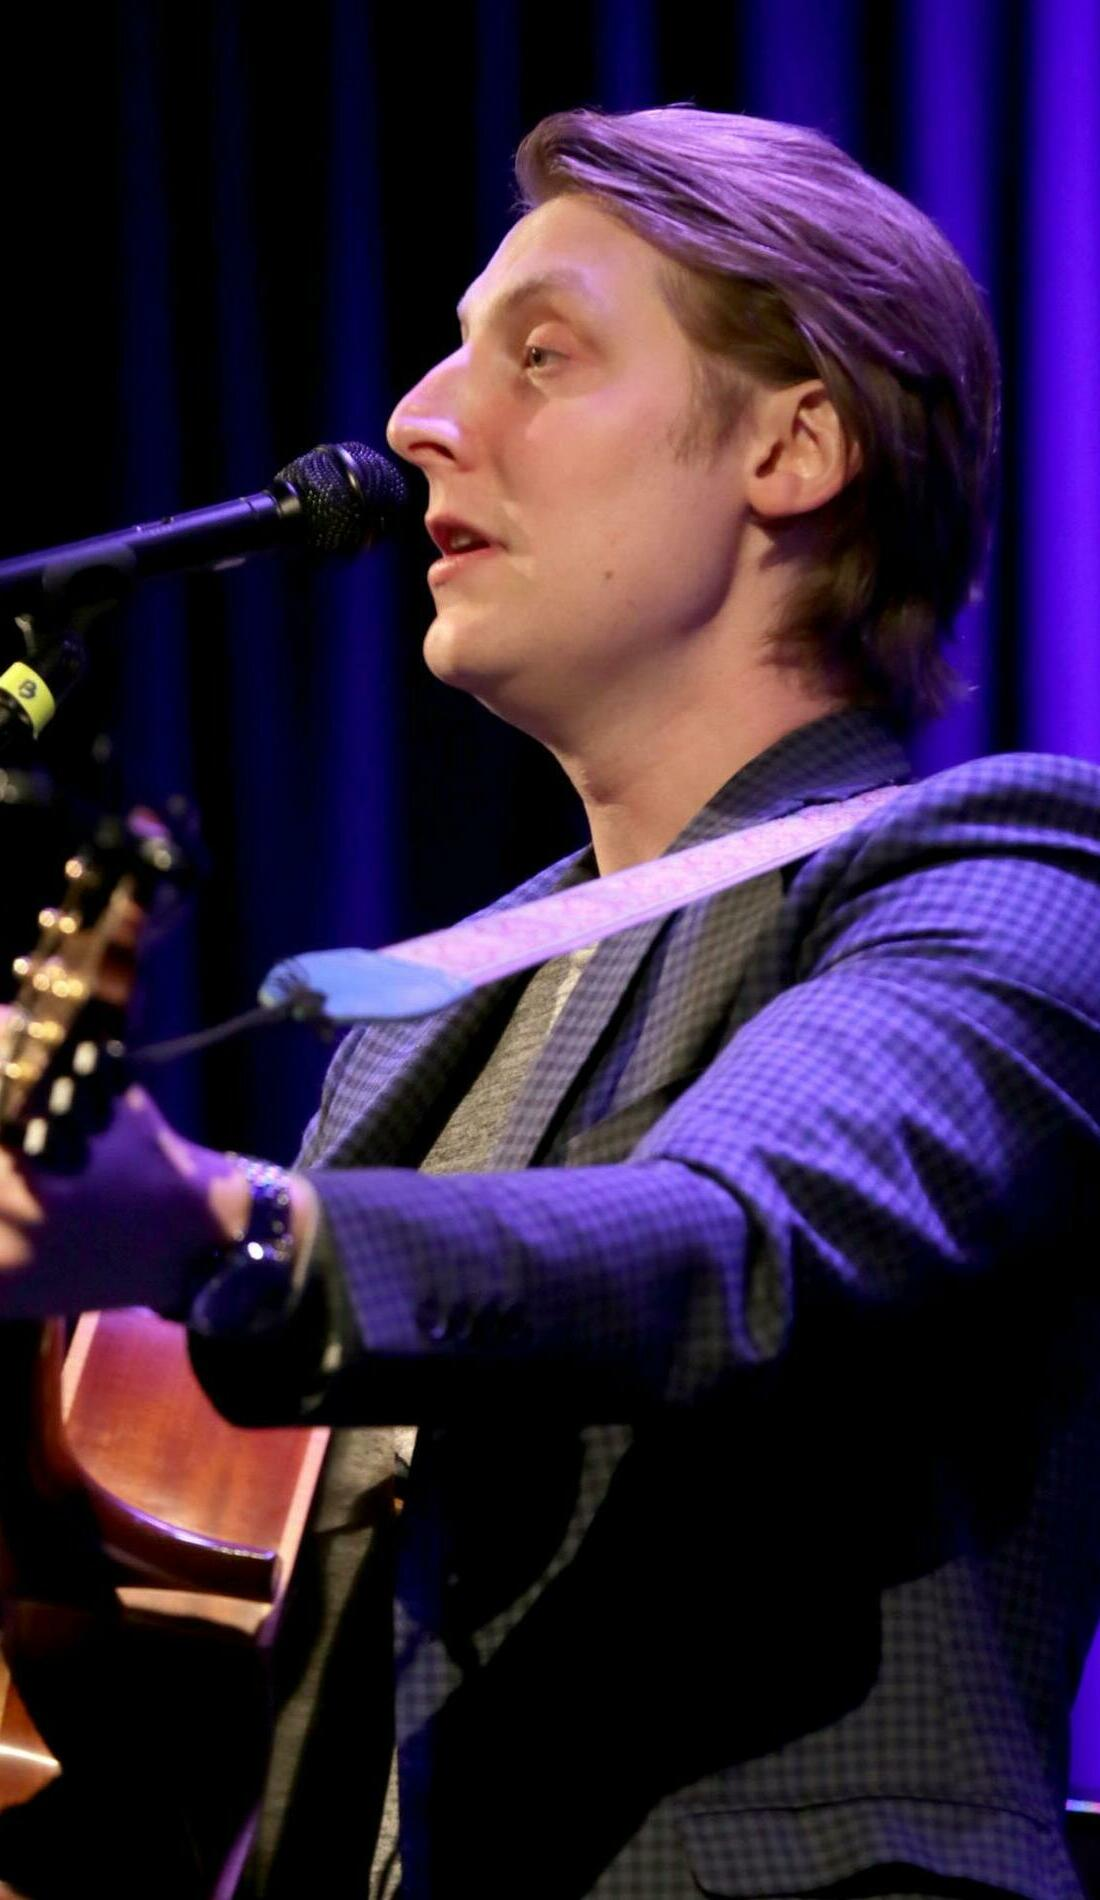 A Eric Hutchinson live event